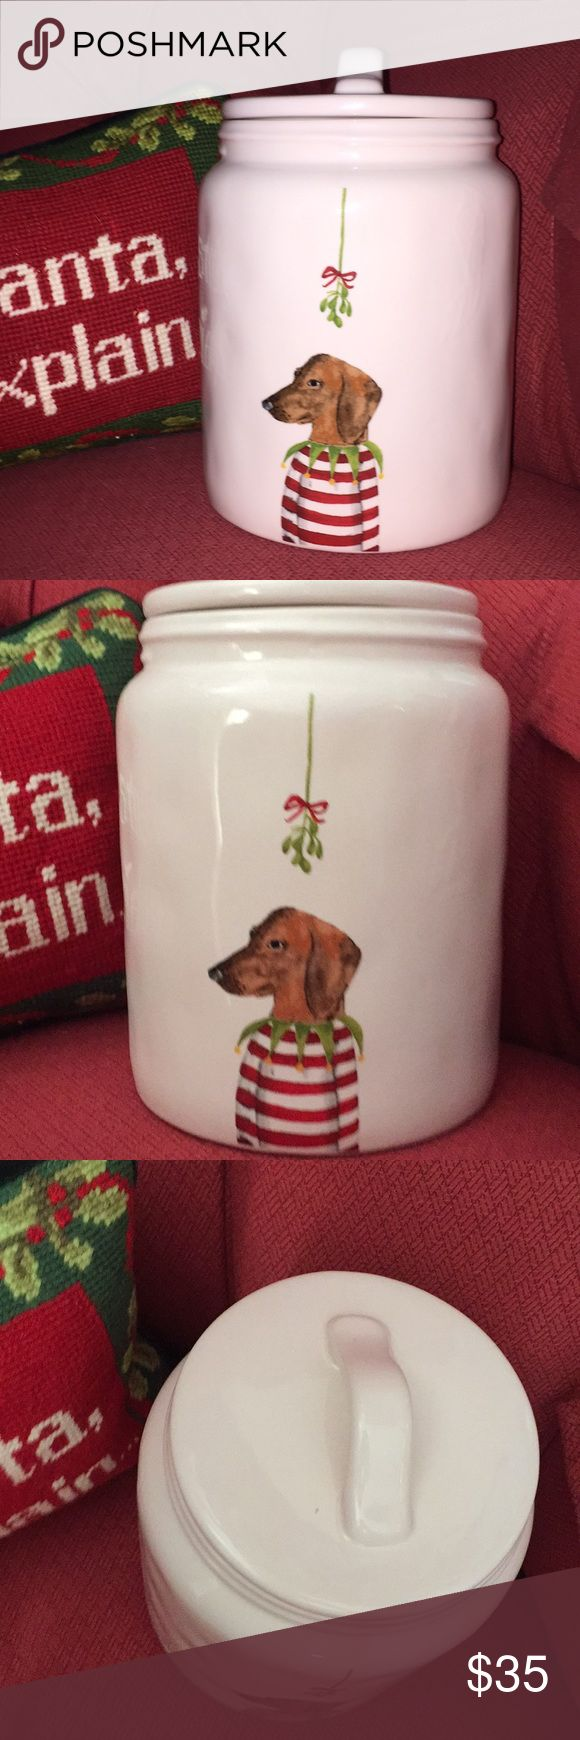 NEW! RAE DUNN WHIMSICAL COOKIE JAR NEW!! Authenticity Rae Dunn Artisan Collection by Magenta. NEW!! Classic creamy white Rae Dunn background. Cookie Jar Decorated with a detailed dog dressed as an elf on the front with a candy cane striped shirt and a green with jingle bells collar. Mistletoe  above him  hanging by a red bow ribbon. Large lid with rubber gasket to ensure closure. Back of the jar / canister is blank and can be turned around for a plain look.  Rae Dunn Other